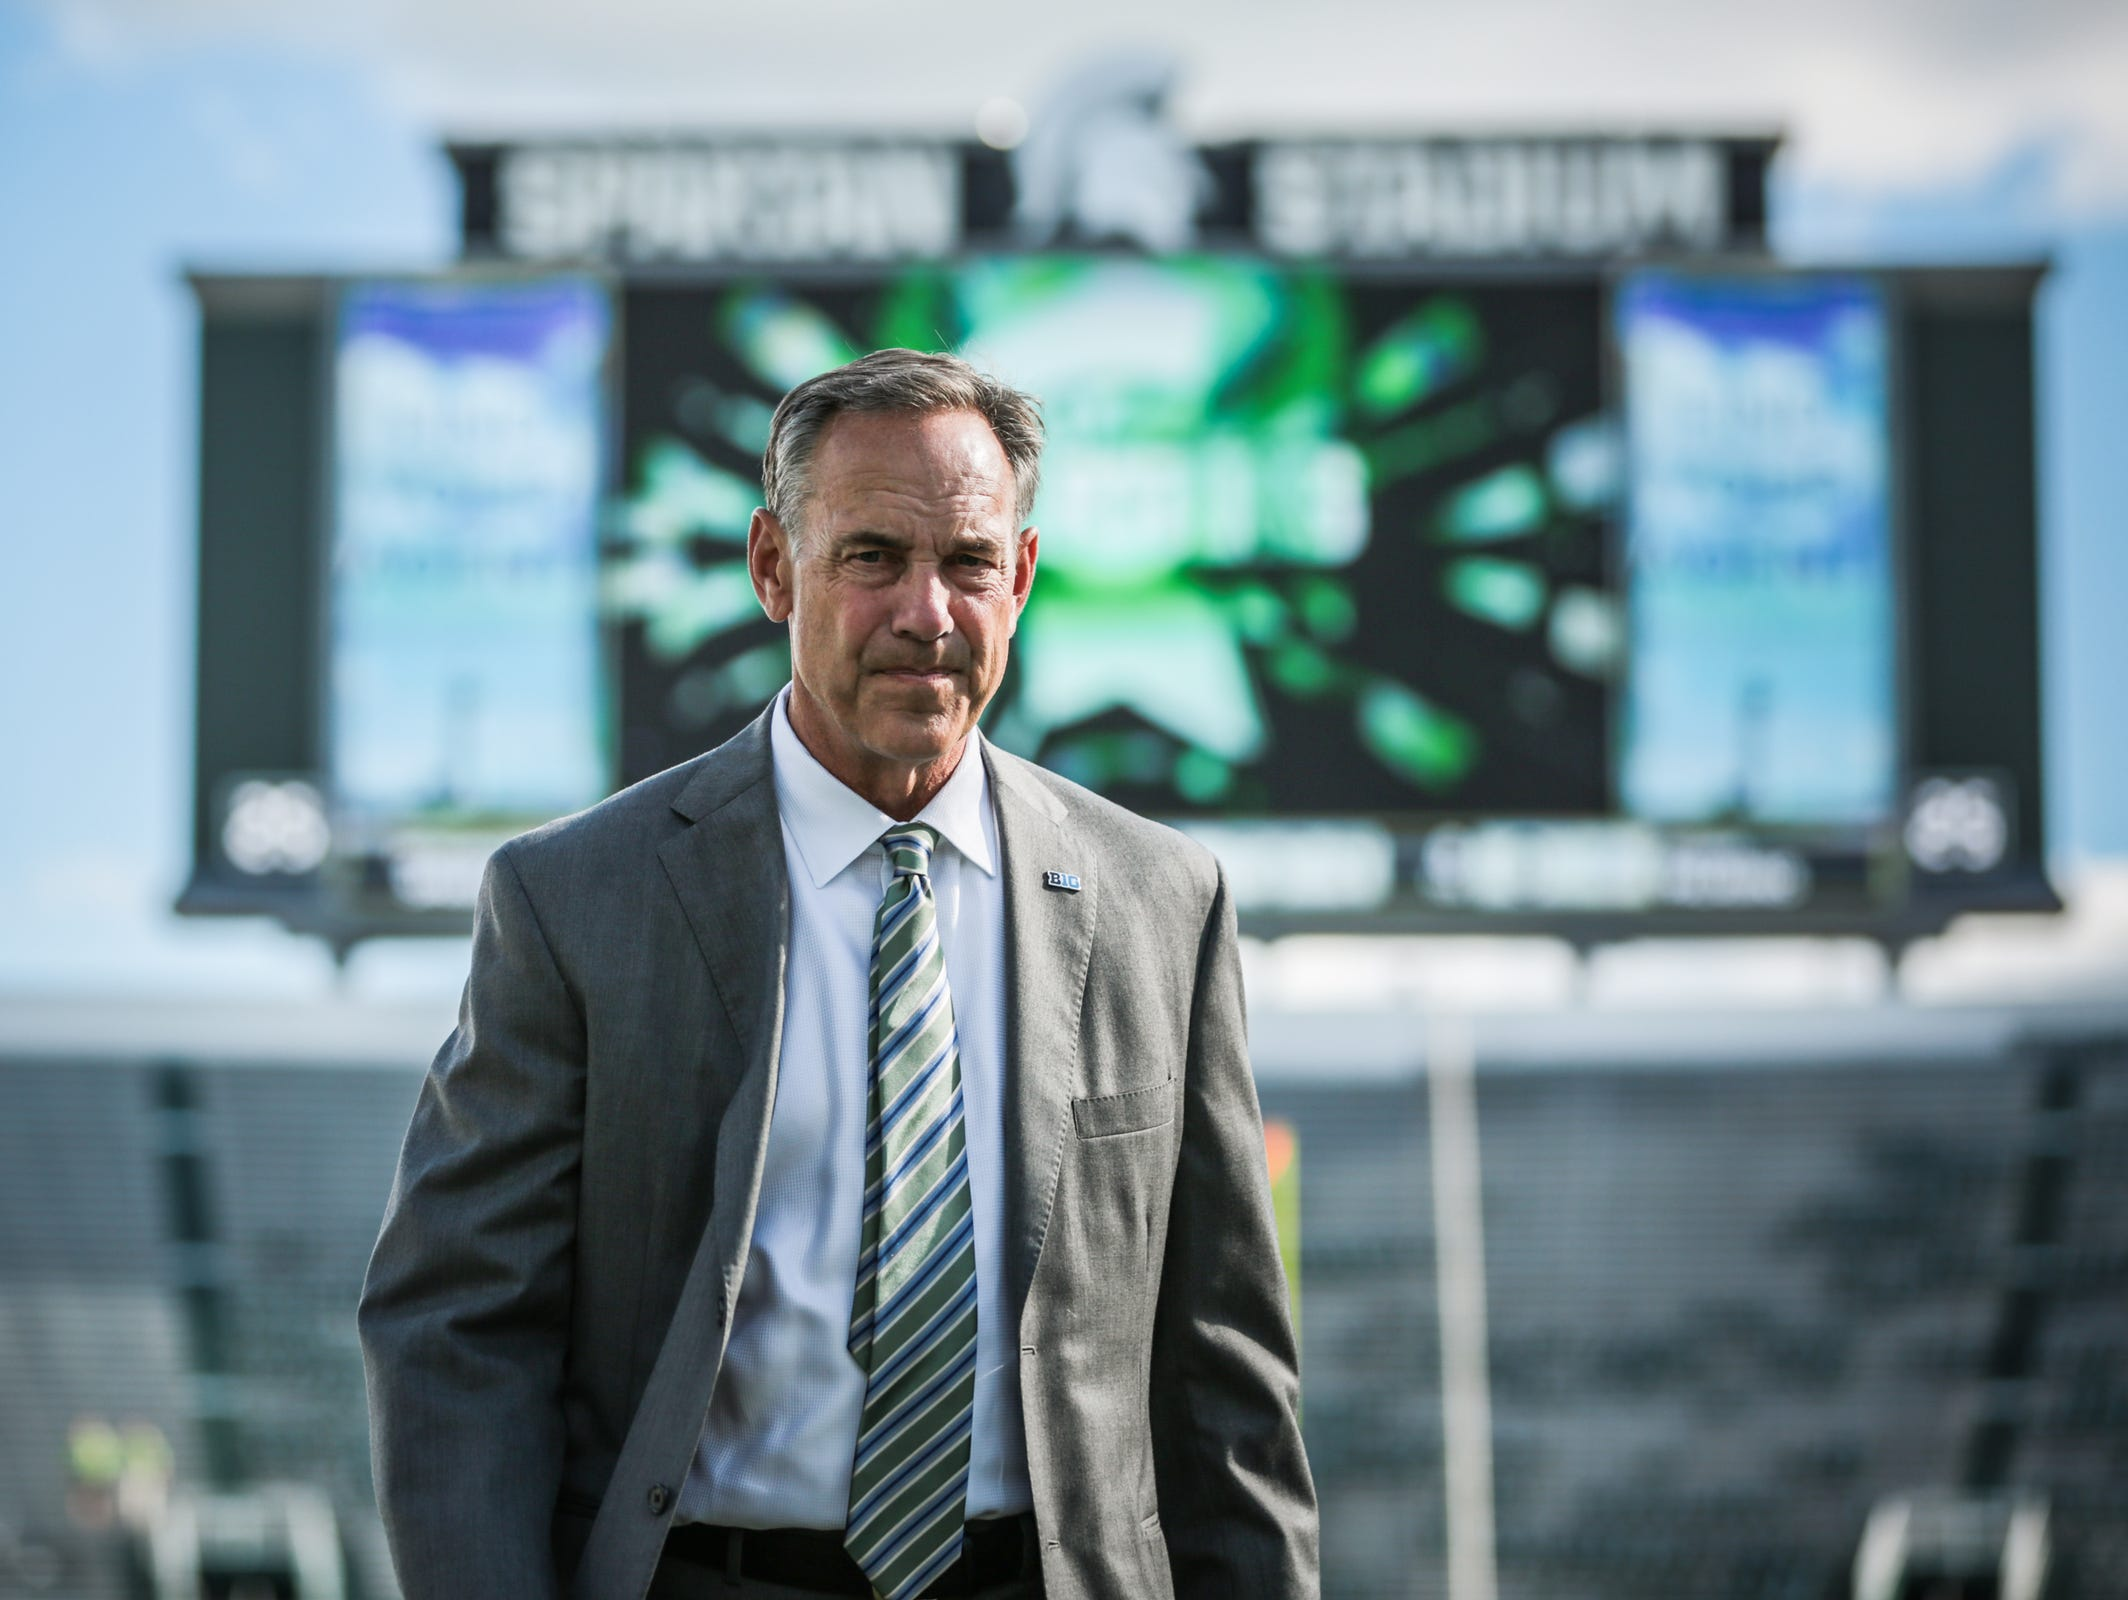 Michigan State Spartans head coach Mark Dantonio walks on the field before his team's opener against the Furman Paladins at Spartan Stadium in East Lansing, Michigan, on Friday, September 2, 2016.